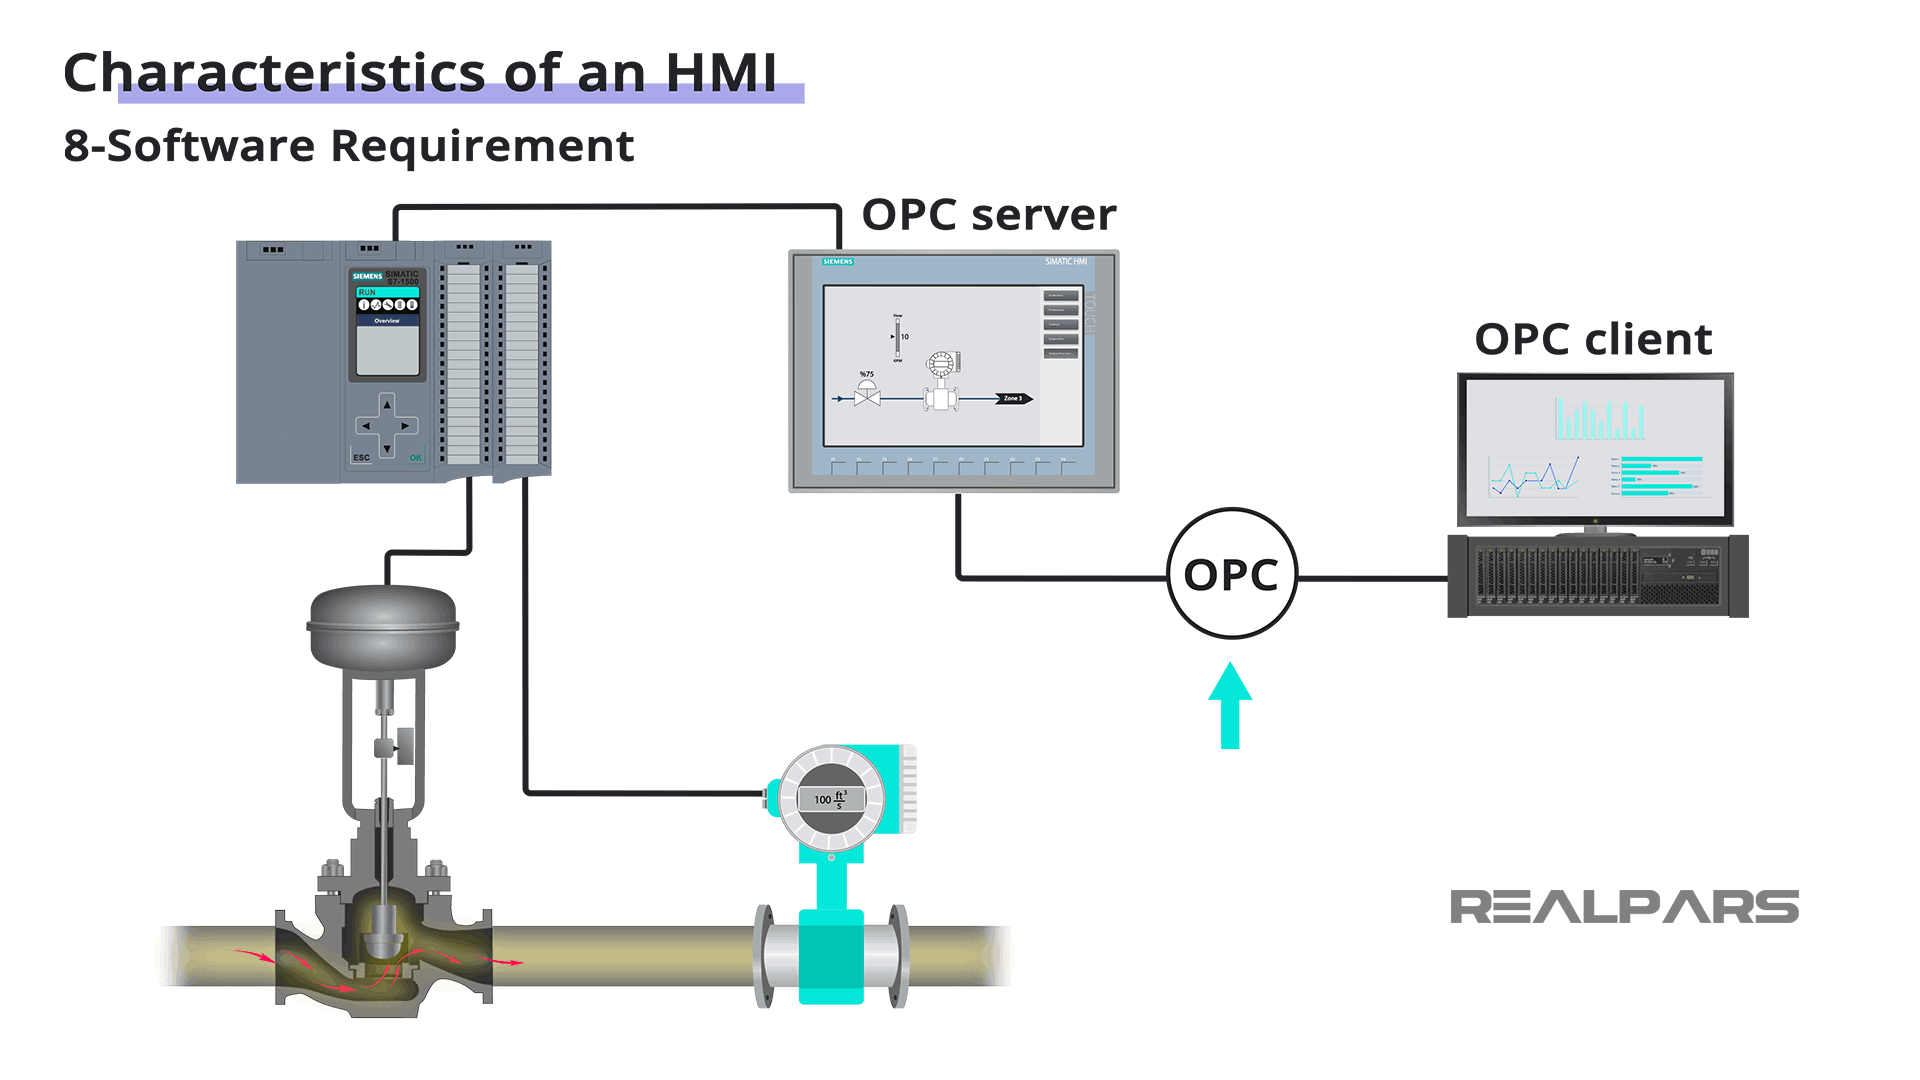 HMI with OPC